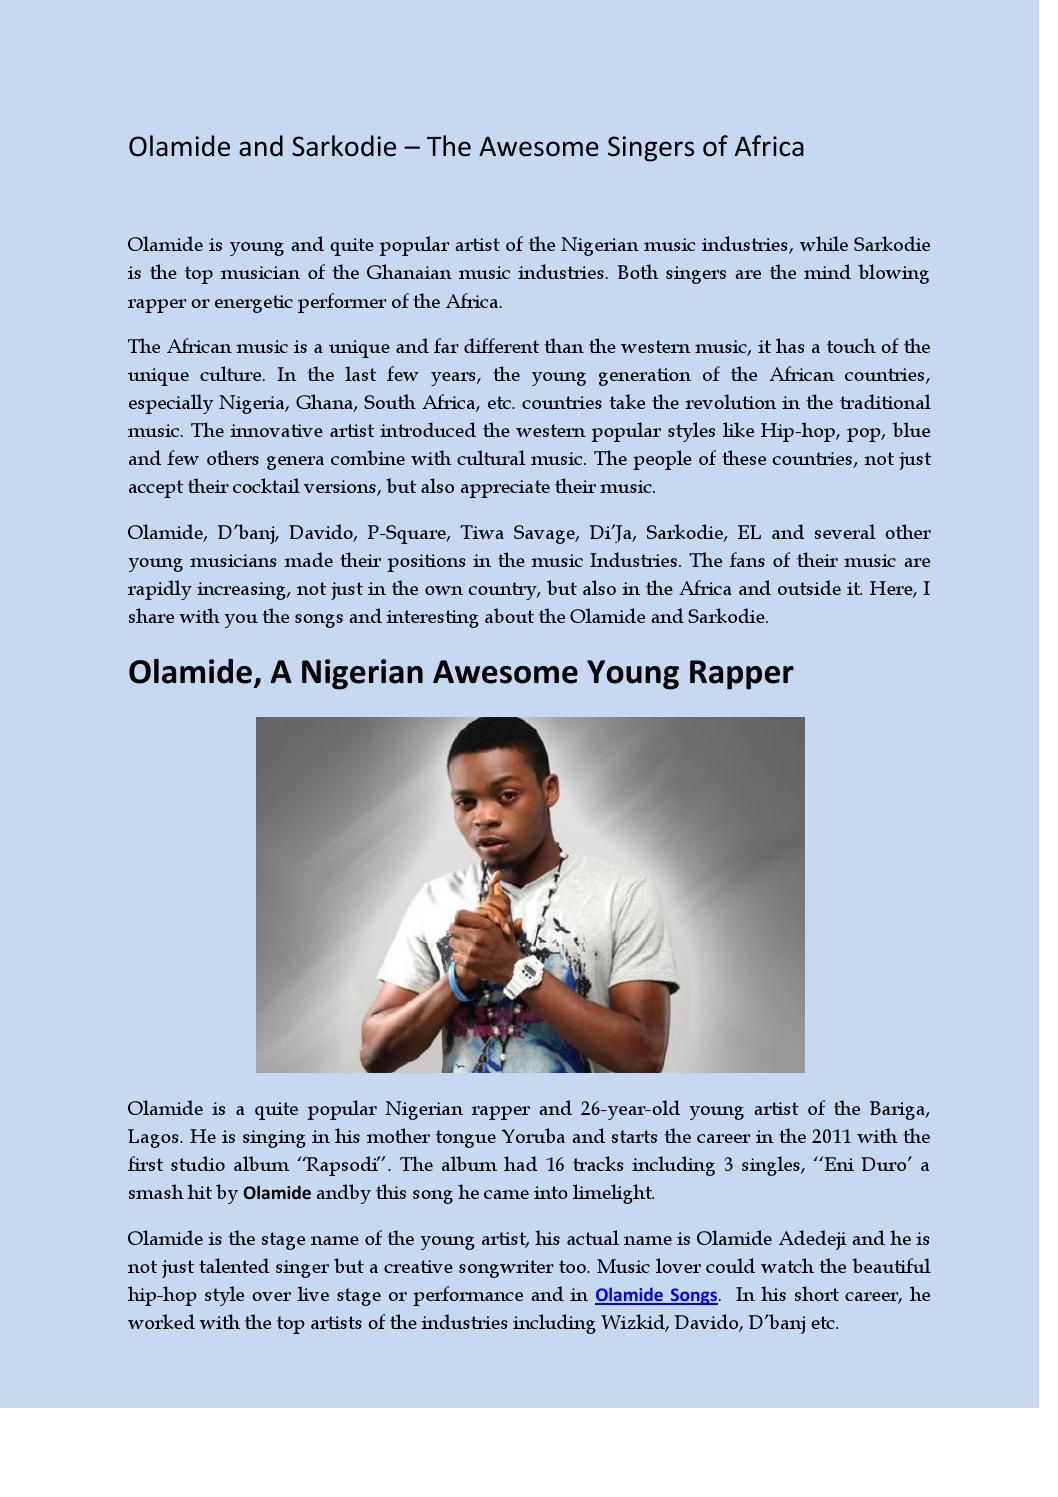 Olamide and sarkodie – the awesome singers of africa by